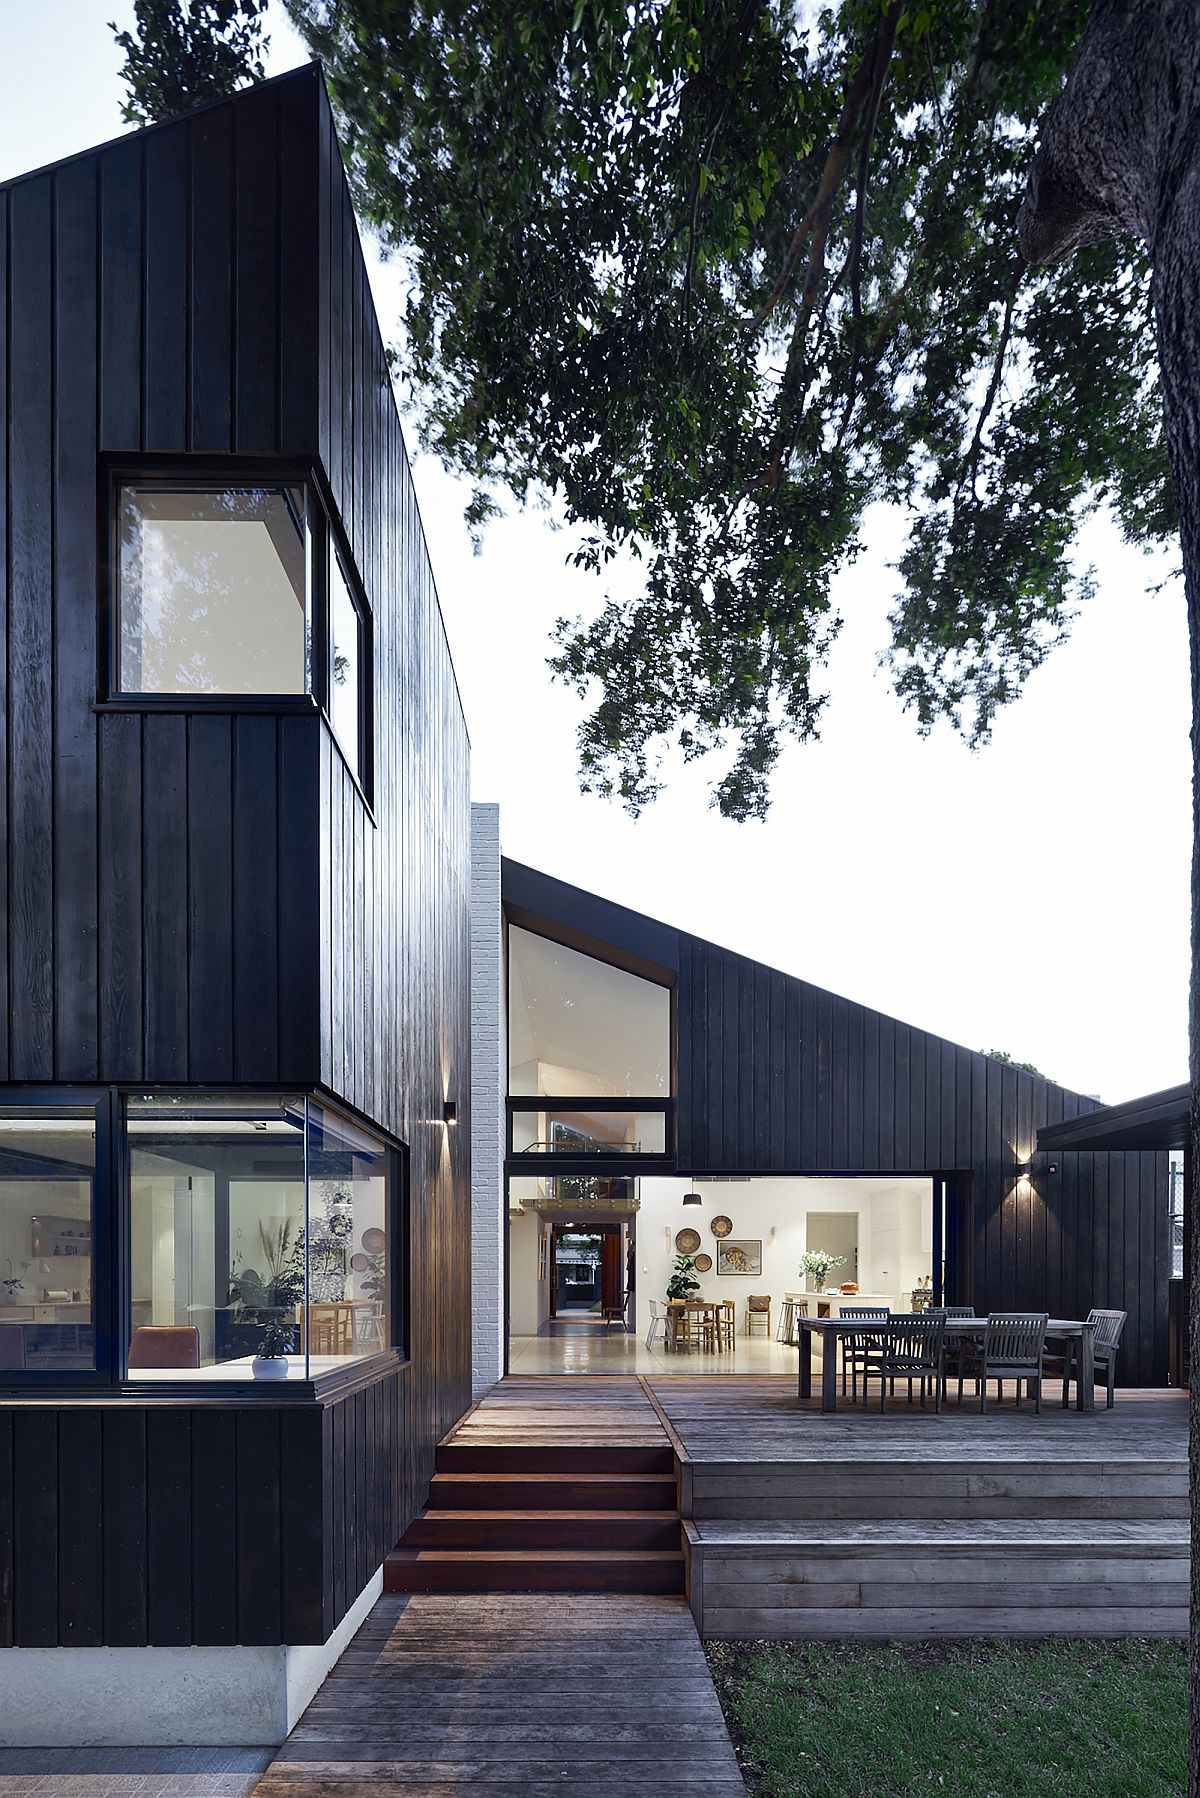 Large wooden deck extends the living area outdoors and connects the interior with the garden